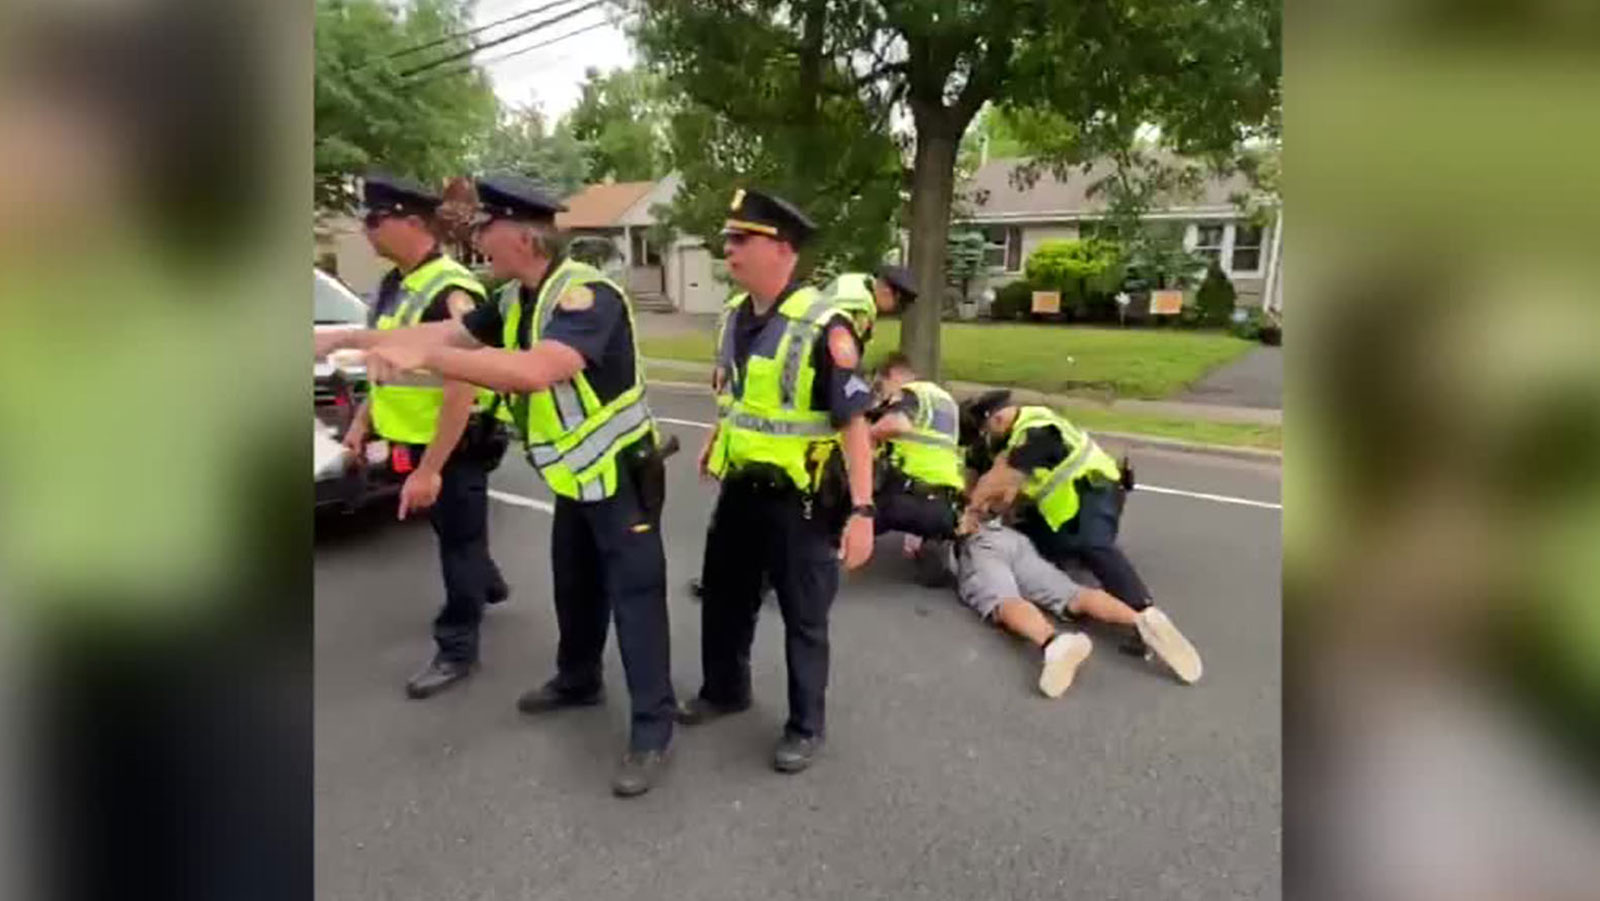 Video appears to show Nassau County police officers shoving black protester to ground, arresting him.